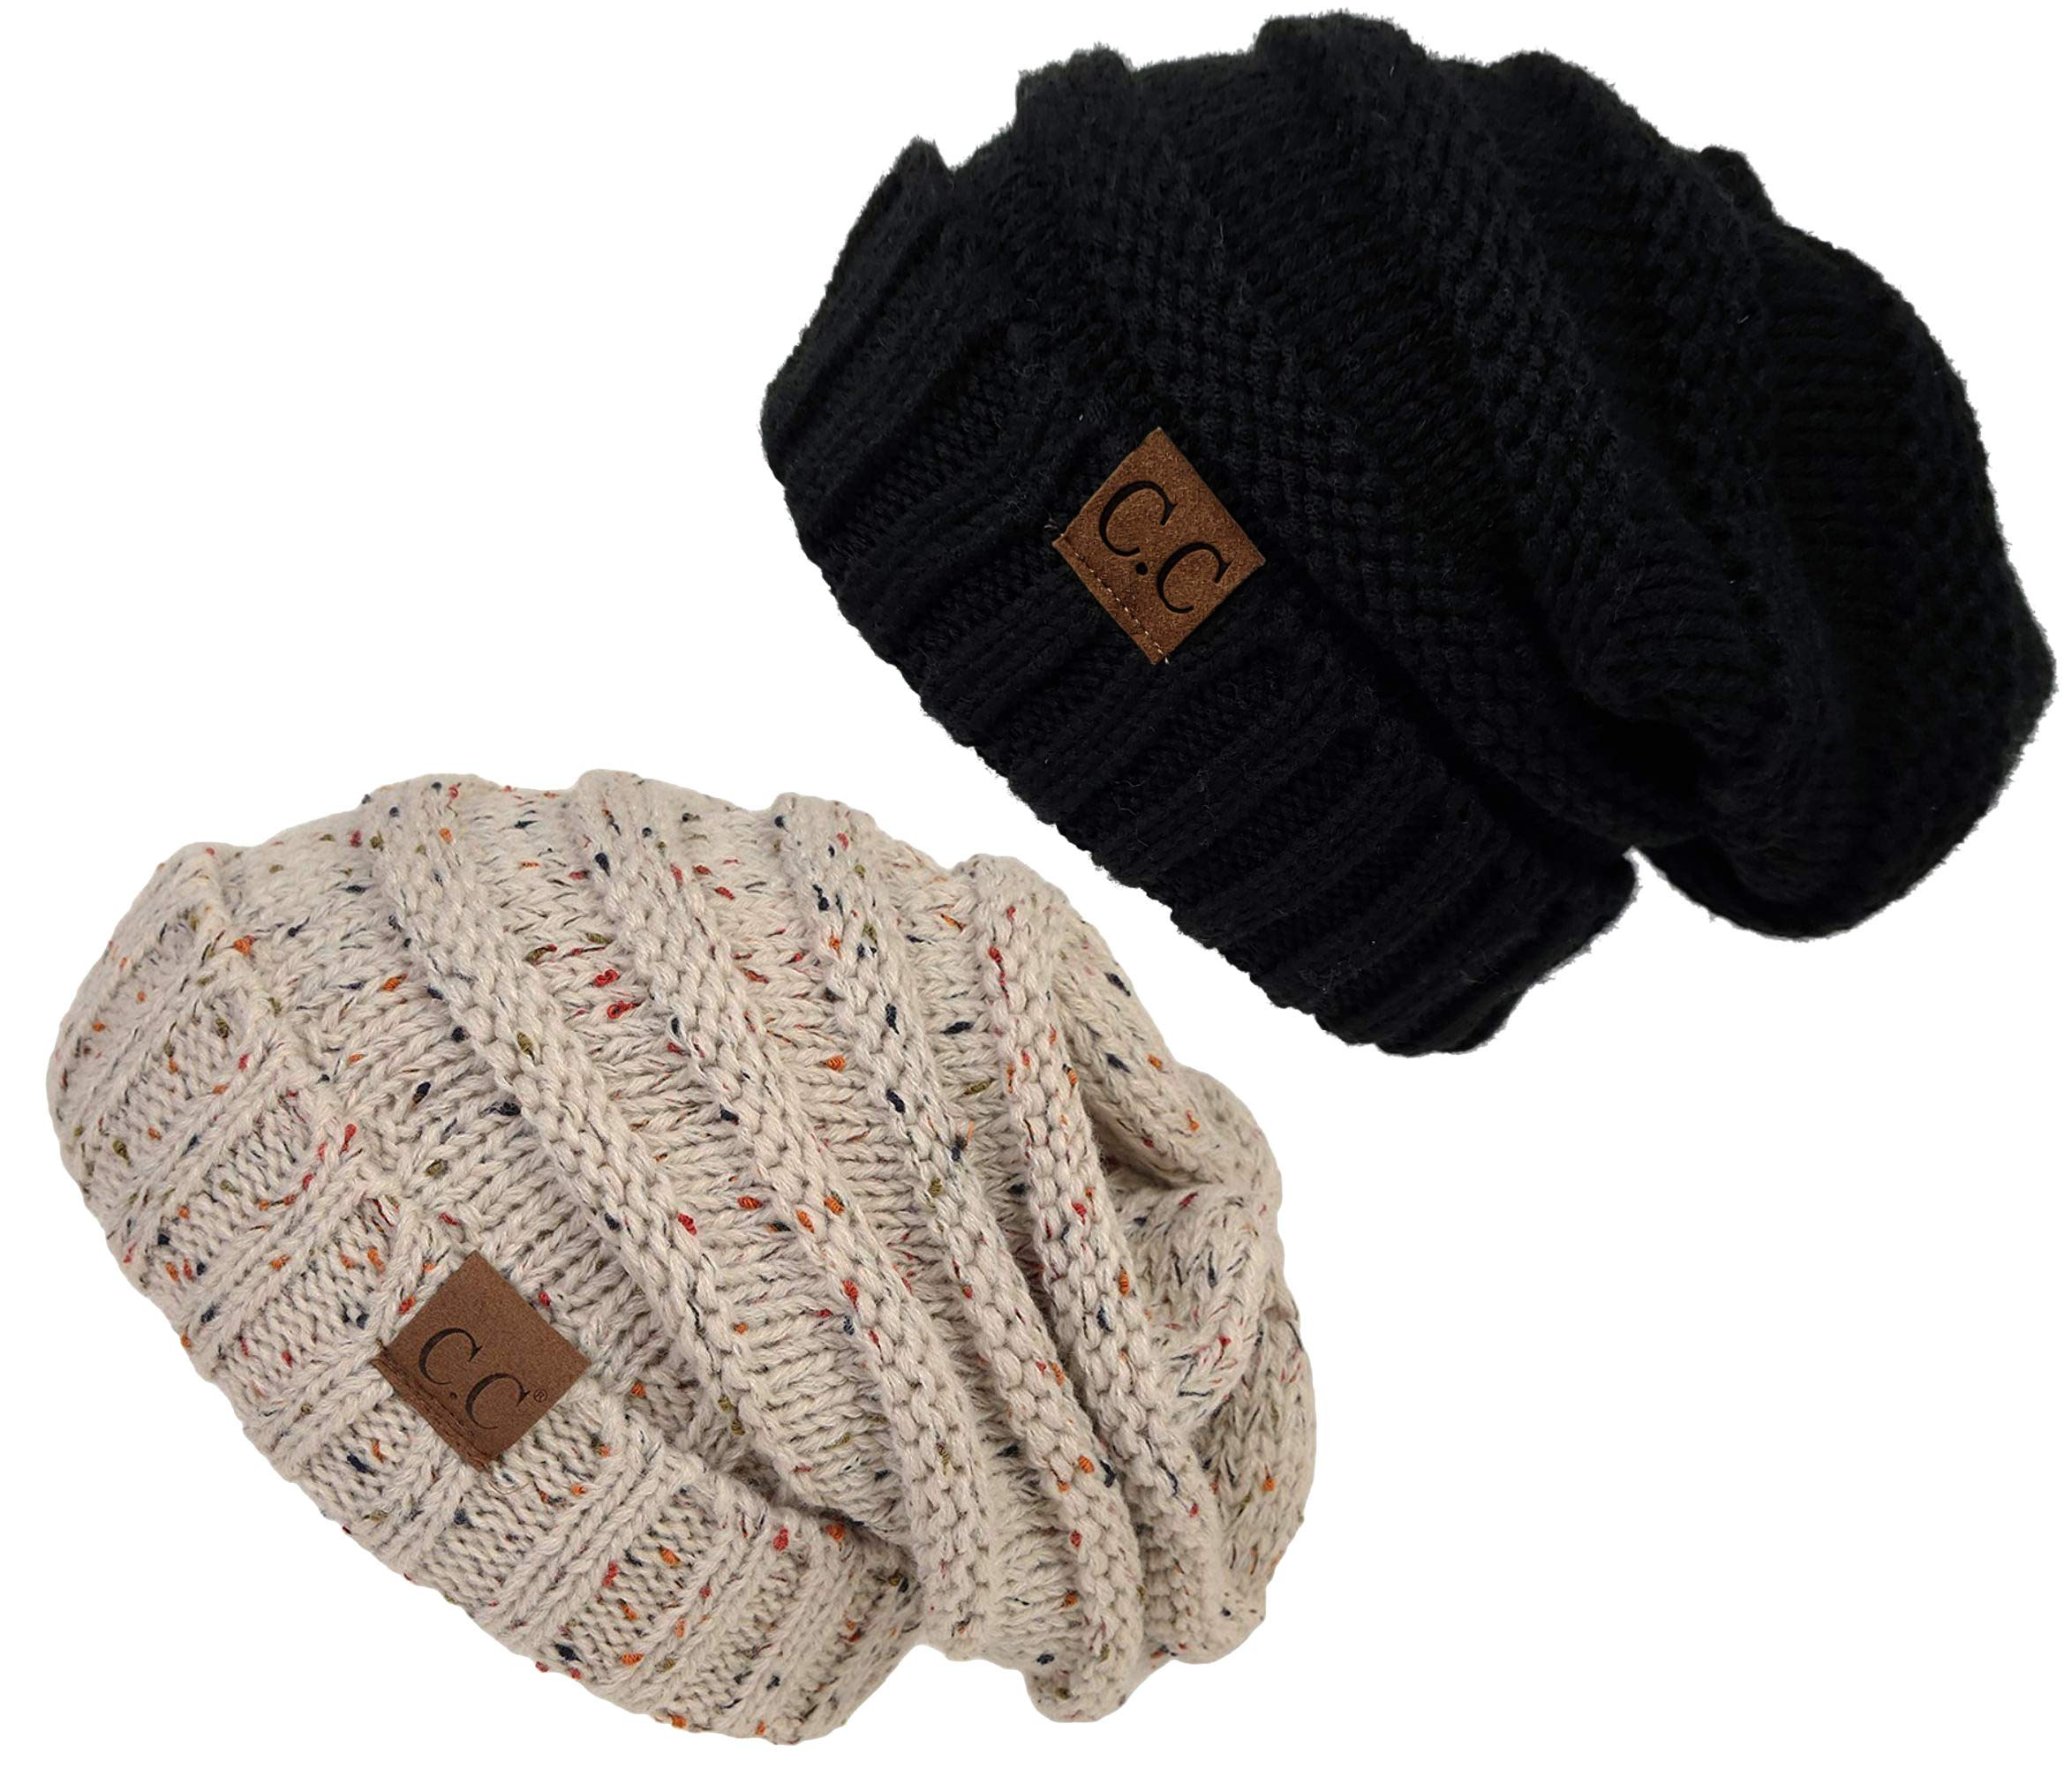 H-6100-2-062067 Oversized Beanie Bundle - Solid Black & Confetti Oatmeal (2 Pack)